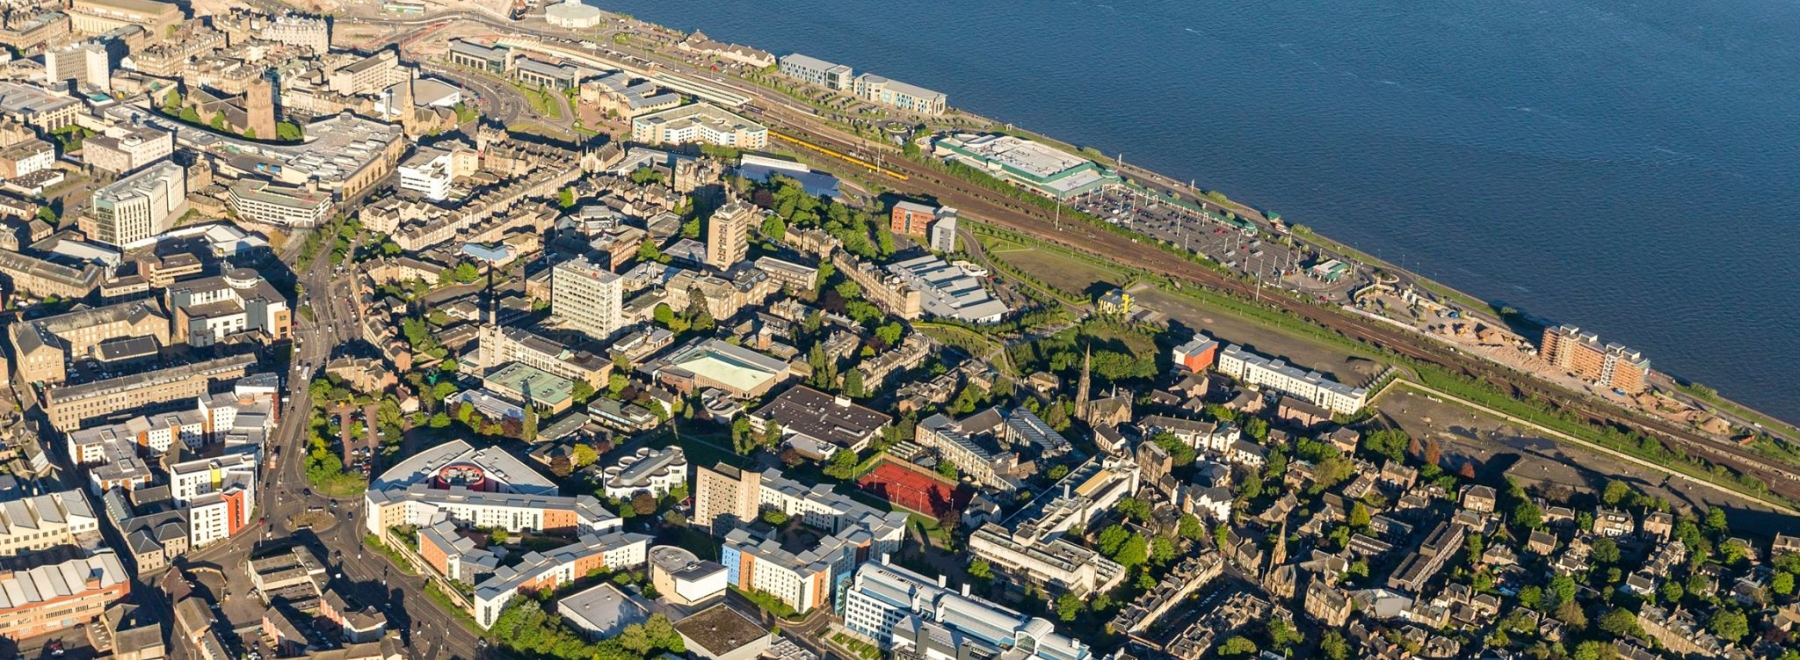 University of Dundee header